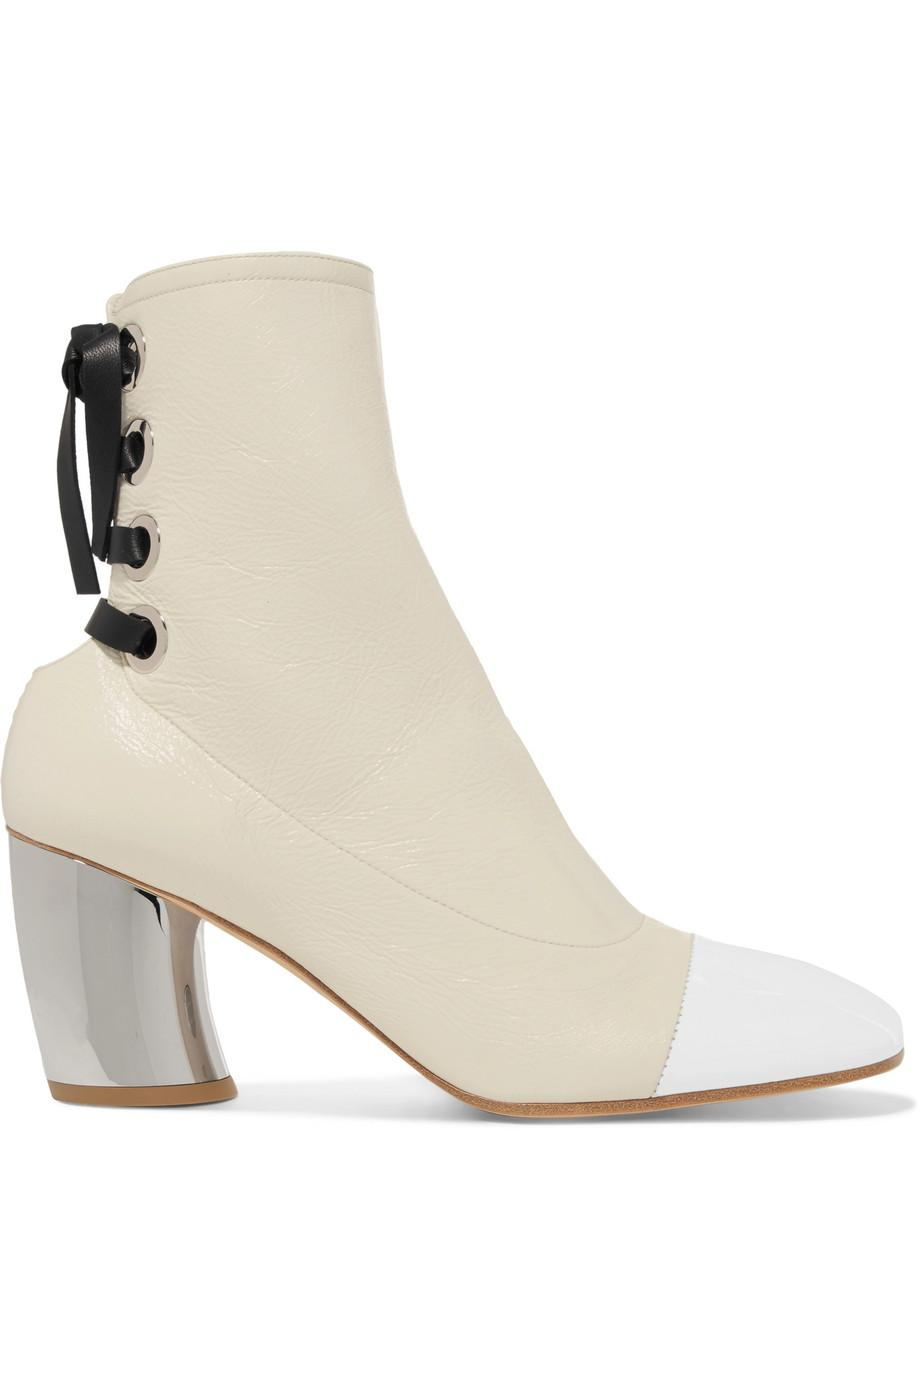 Proenza Schouler Glossed-leather ankle boots JYO0G